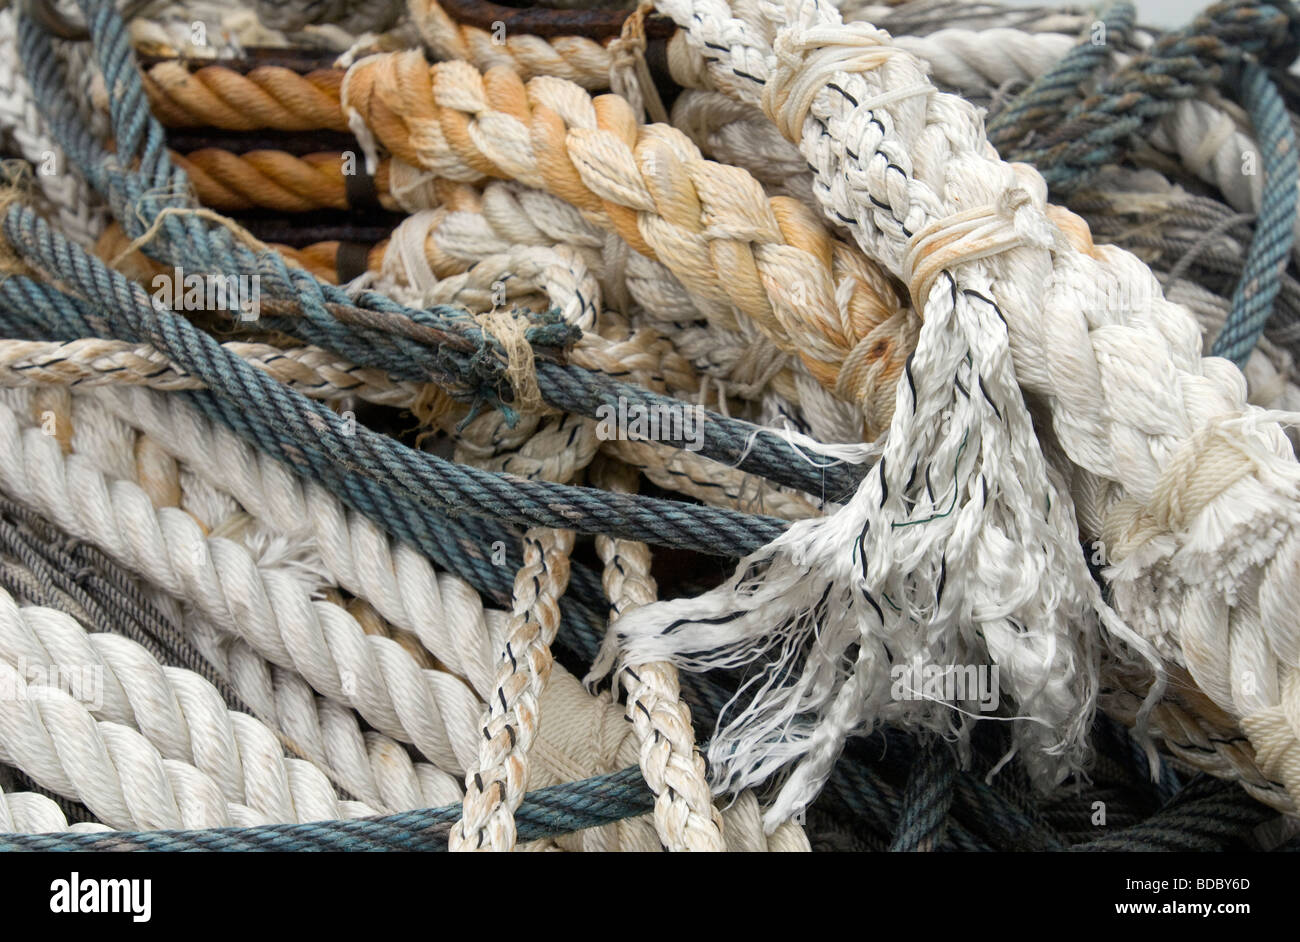 Rope End Knots Stock Photos & Rope End Knots Stock Images